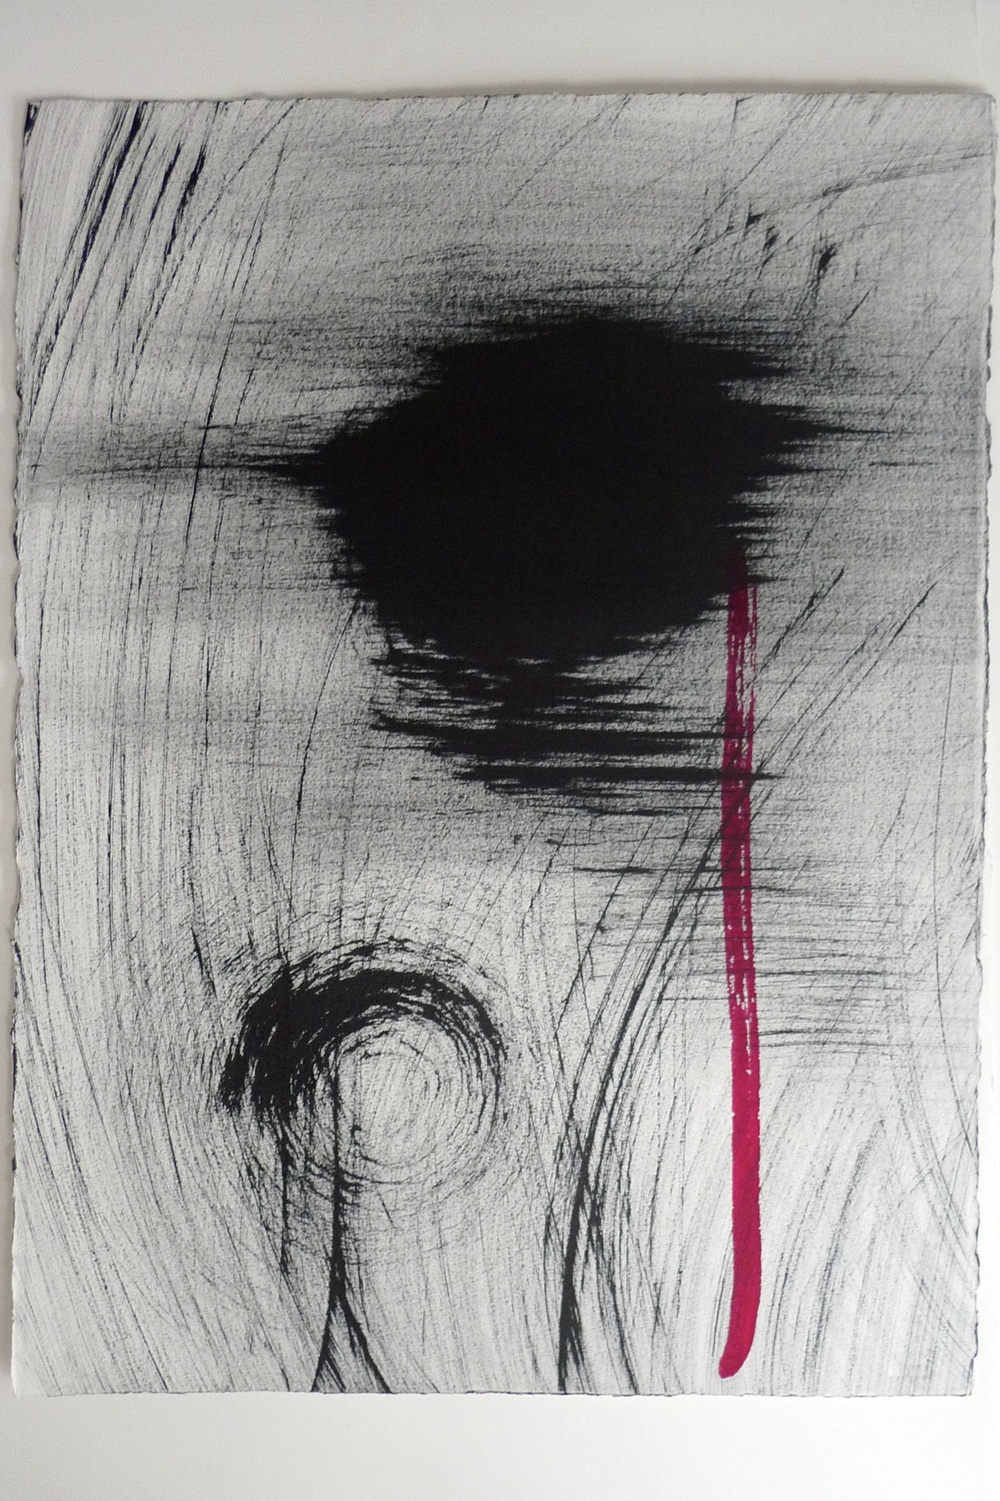 Abstract Black Ink w/ Red Strip Arches Paper  22 x 30""